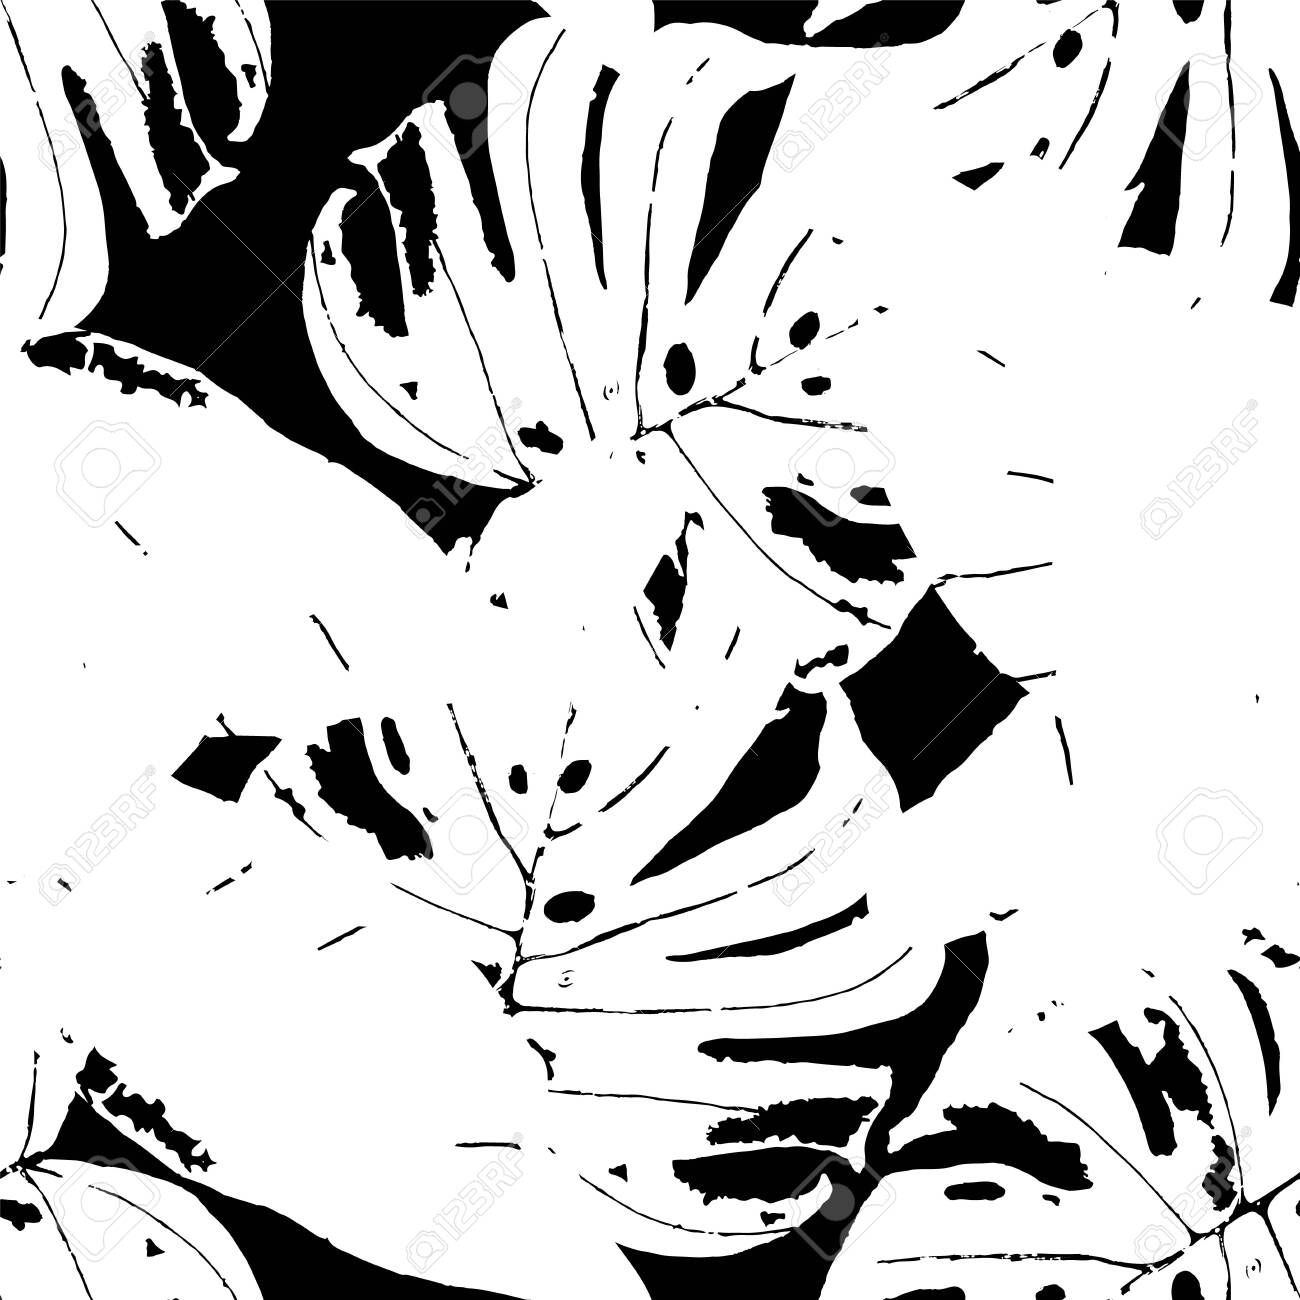 Black and White Banana Leaves Spring Vector Seamless Pattern. Foliage Abstract Background. Hawaii Monstera Leaves Pattern. Monochrome Fashion Flower Wallpaper. - 148513985